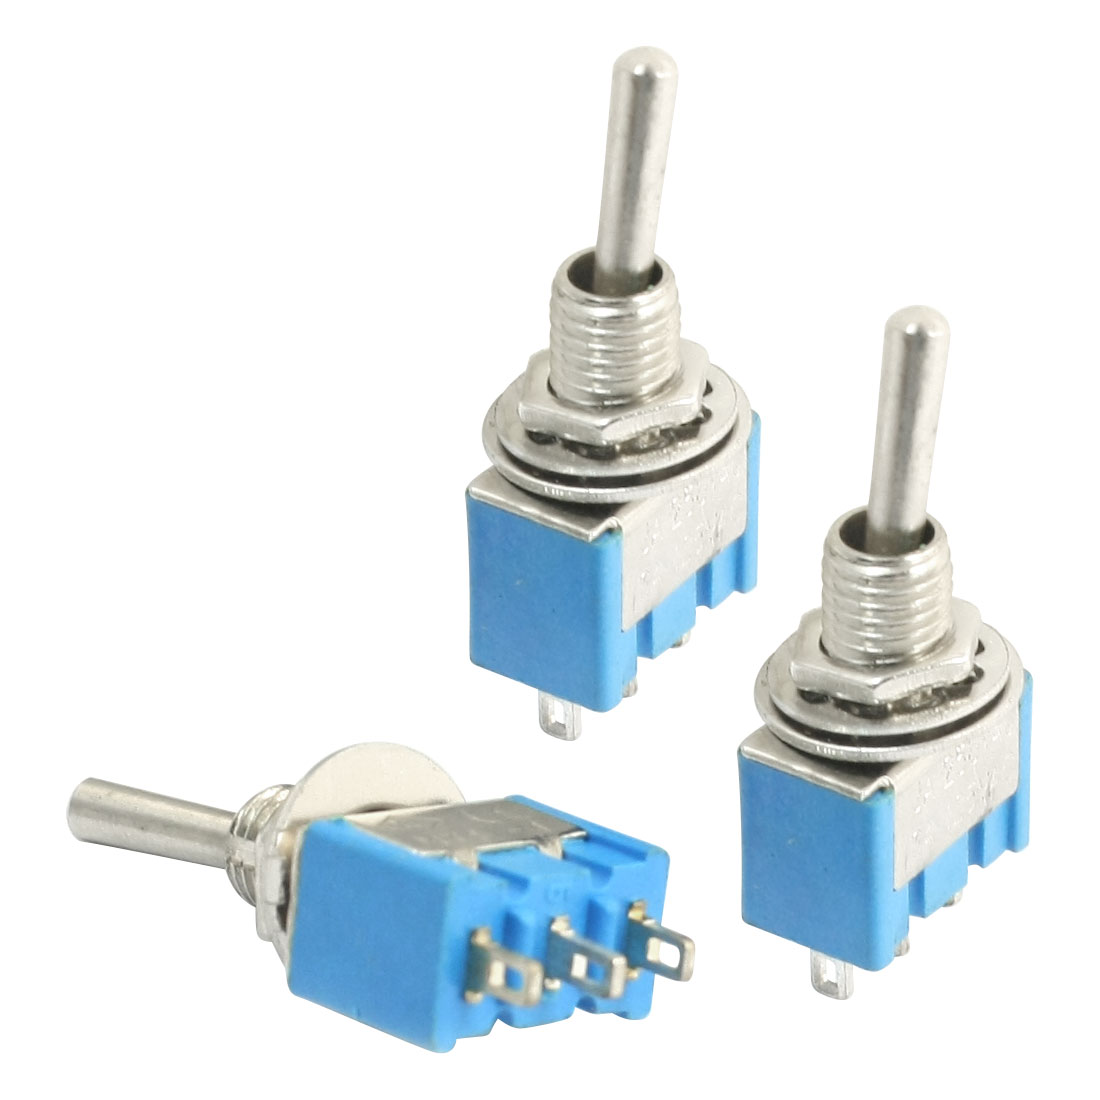 3Pcs 6mm Thread Panel Mounting SPDT 3 Pin Soldering 3 Position Blue Latching Toggle Switch AC 125V 6A 250V 3A